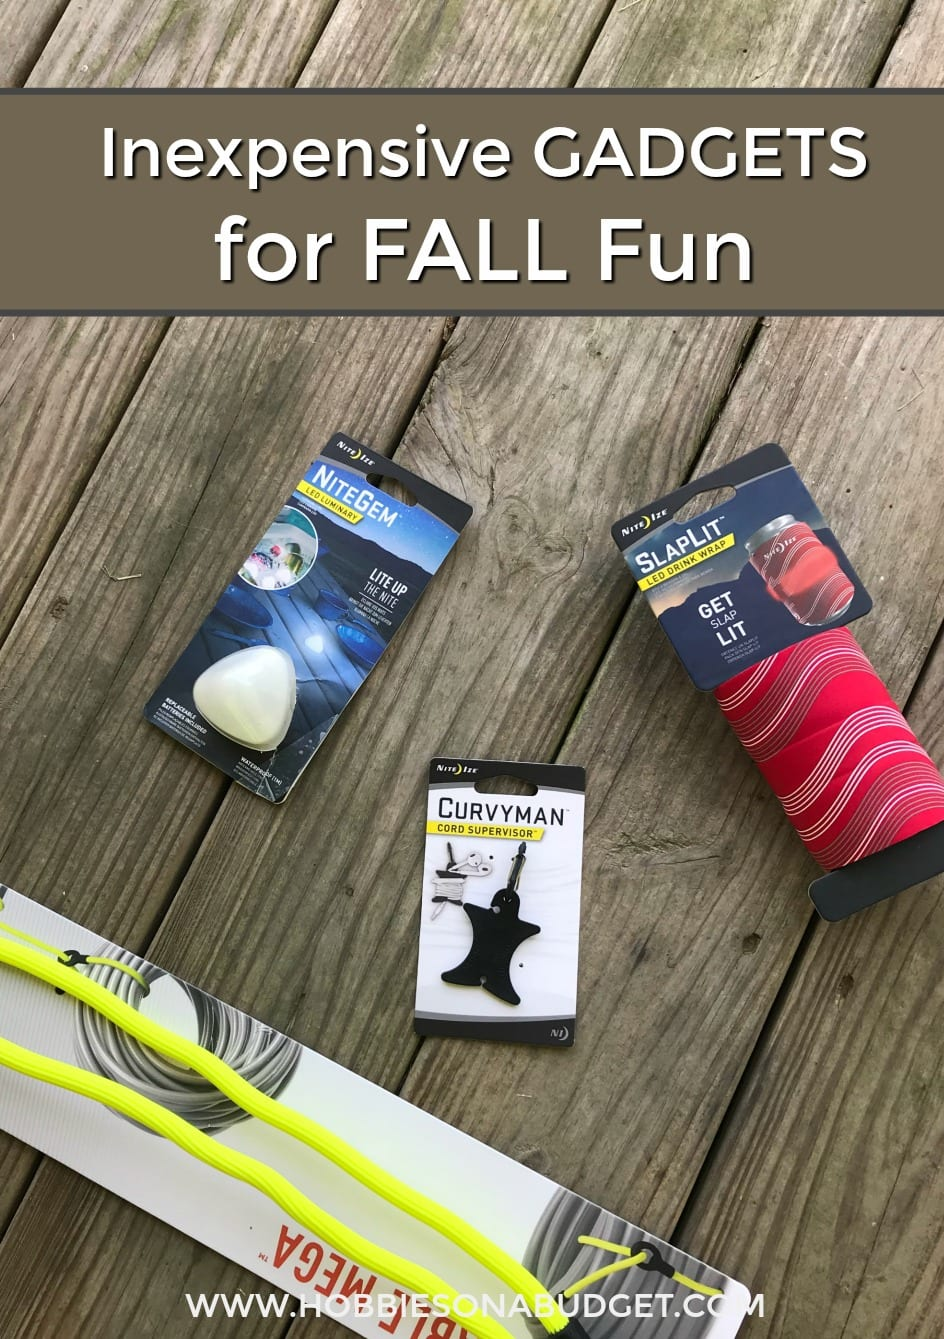 Inexpensive Gadgets for Fall Fun